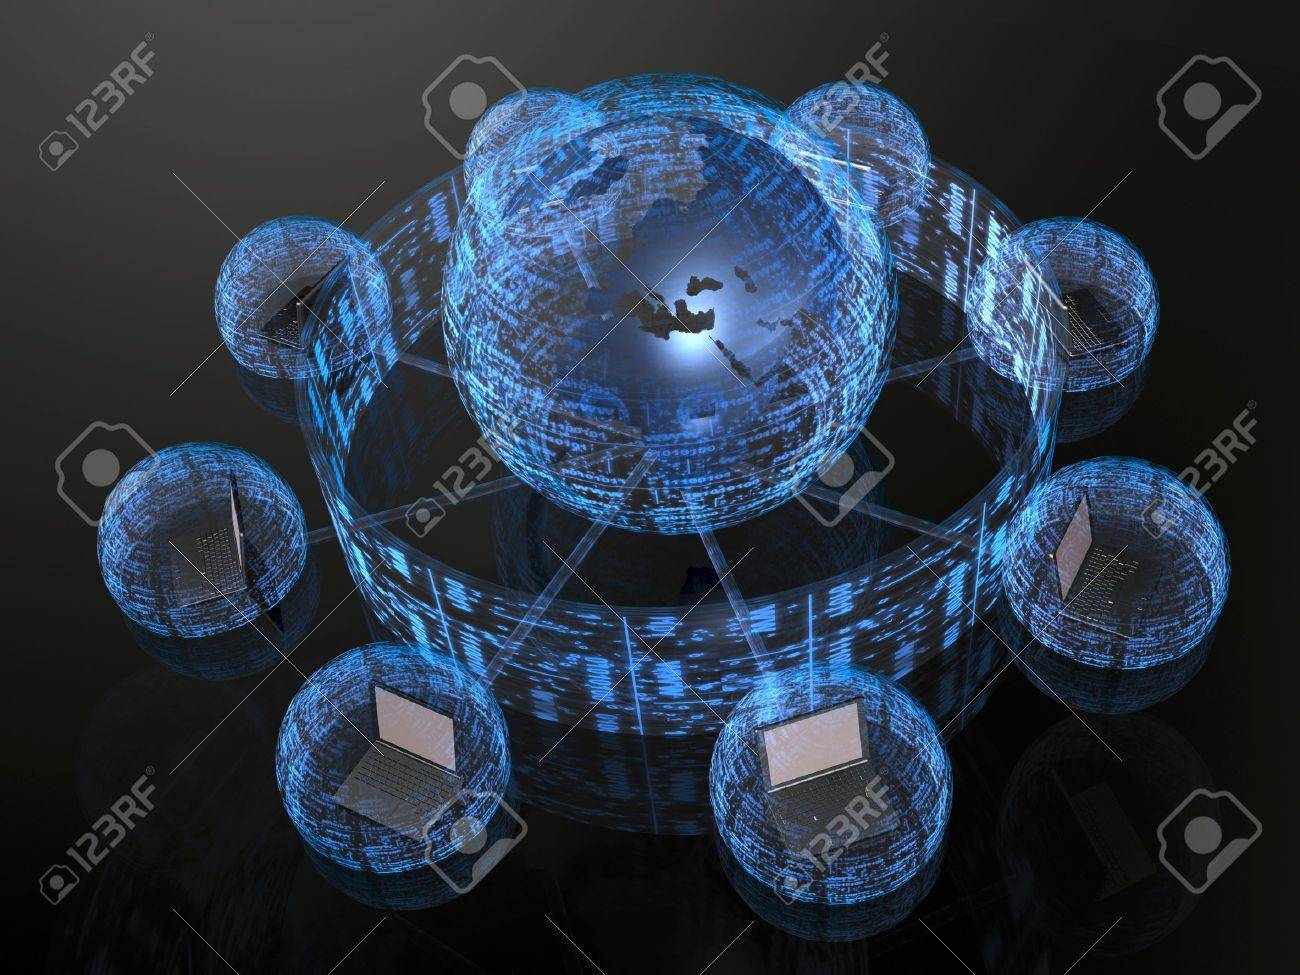 Network - notebooks and blue firewalled globe on black background. - 8631458